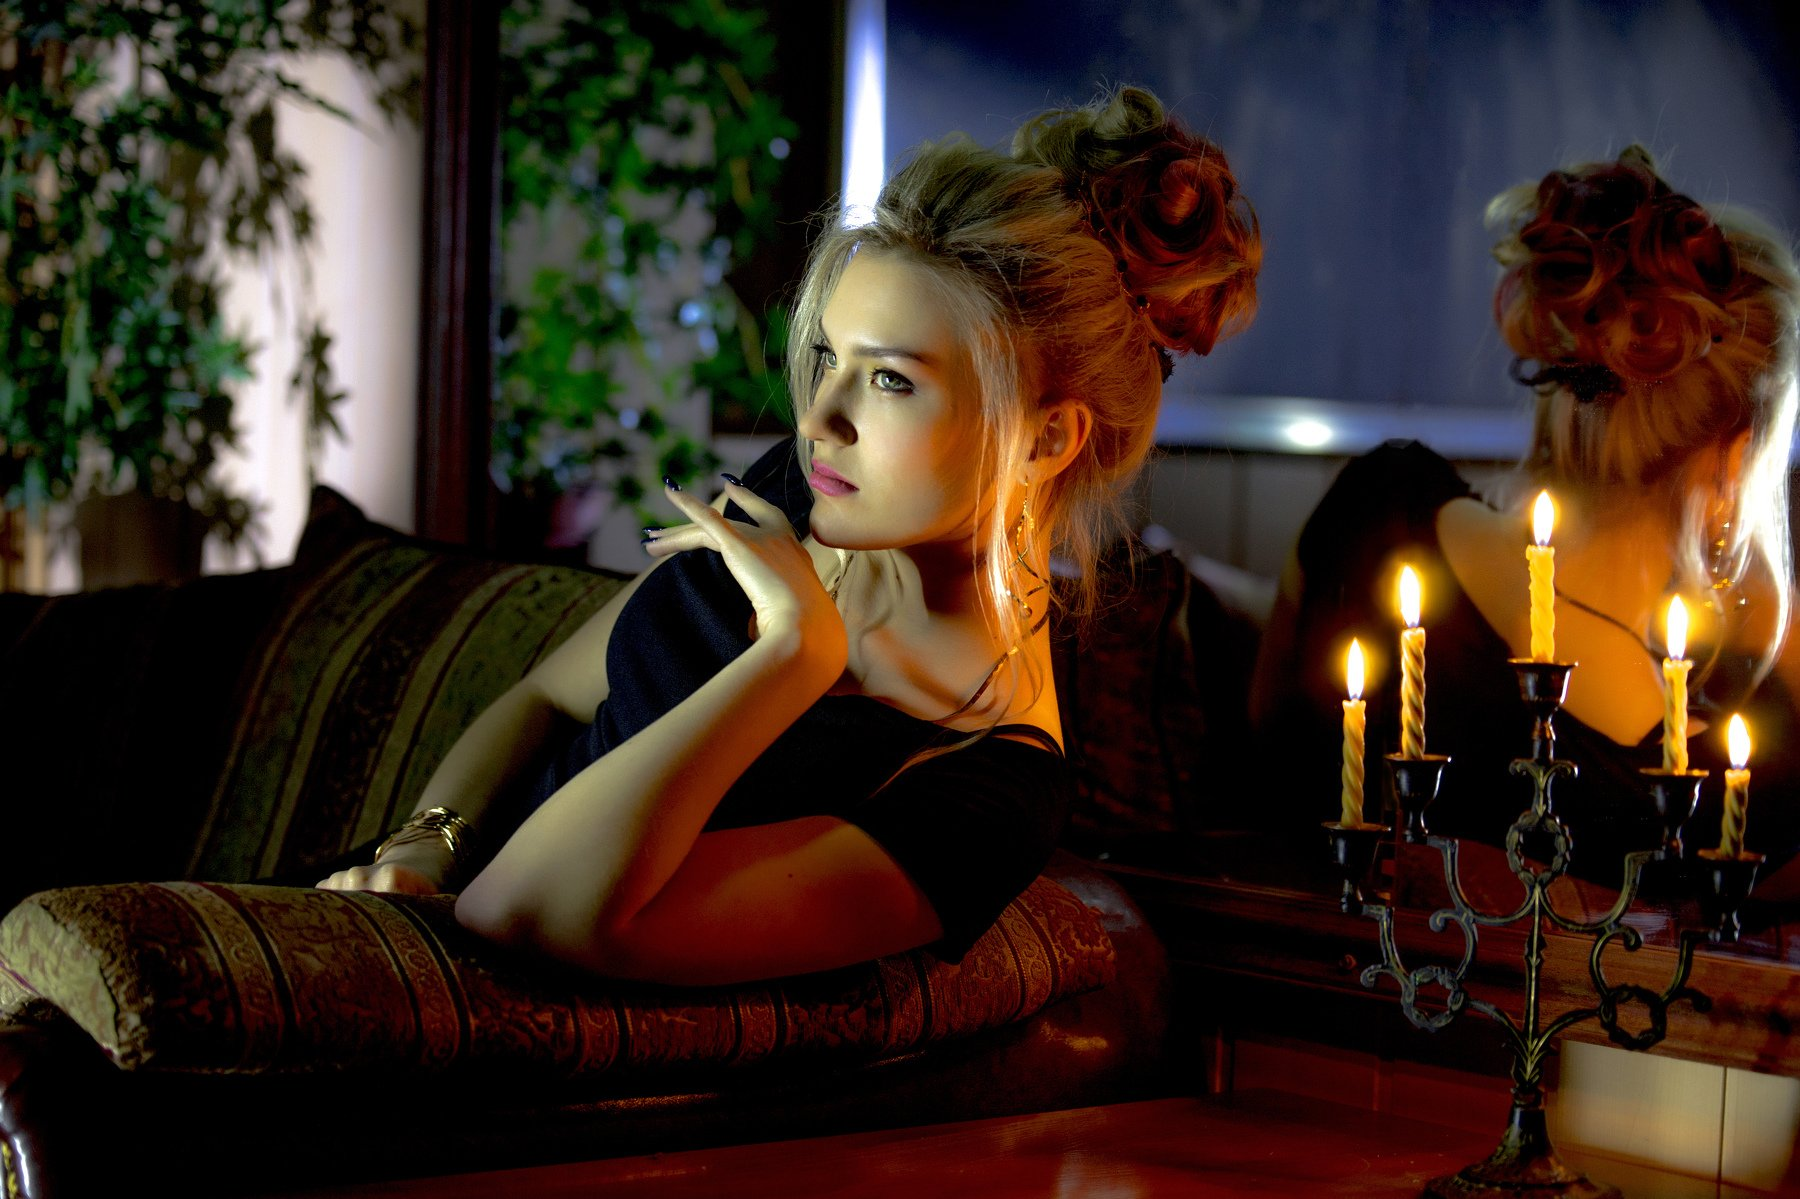 woman, beautiful, beauty, young, fashion, portrait, model, people, hair, blond, blonde, glamour, person, dress, night, lady, face, makeup, red, sensual, retro, happy, style, lingerie, candle holder, romance, evening, reflection, mirror, eyes, lips, jewelr, Вячеслав 19